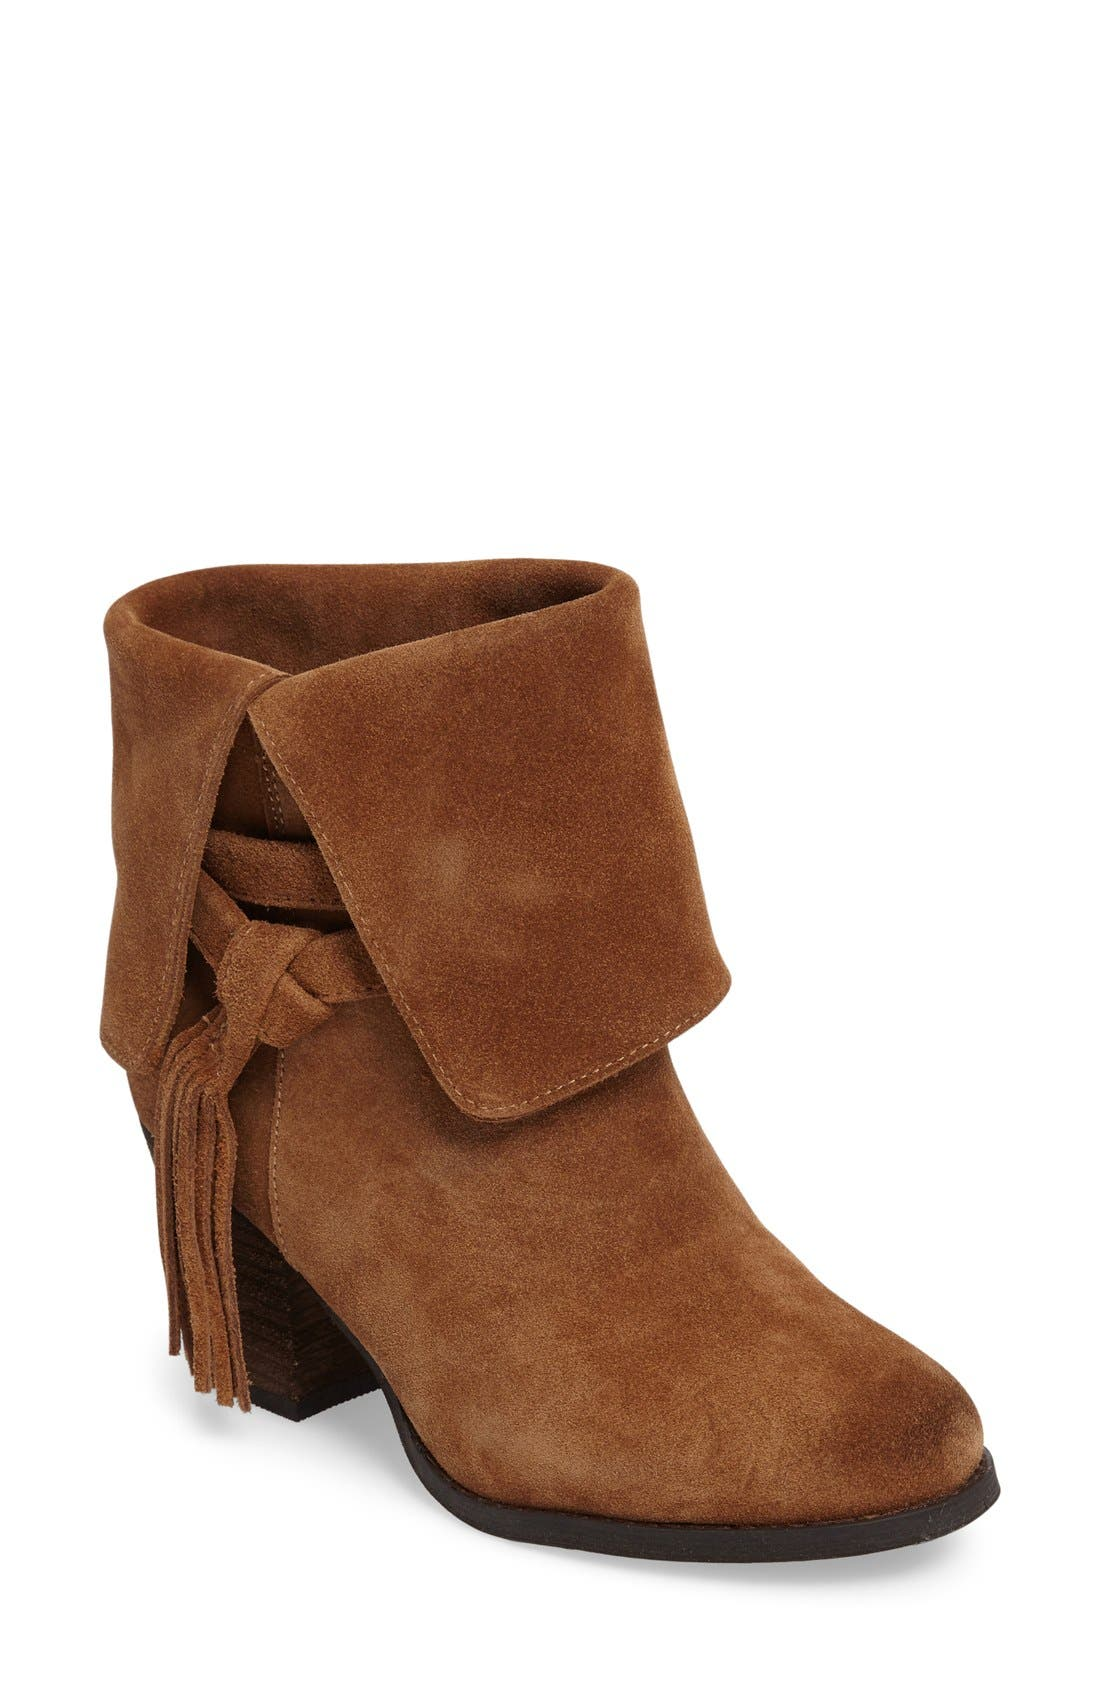 Alternate Image 1 Selected - Sbicca Cairenn Cuffable Bootie (Women)